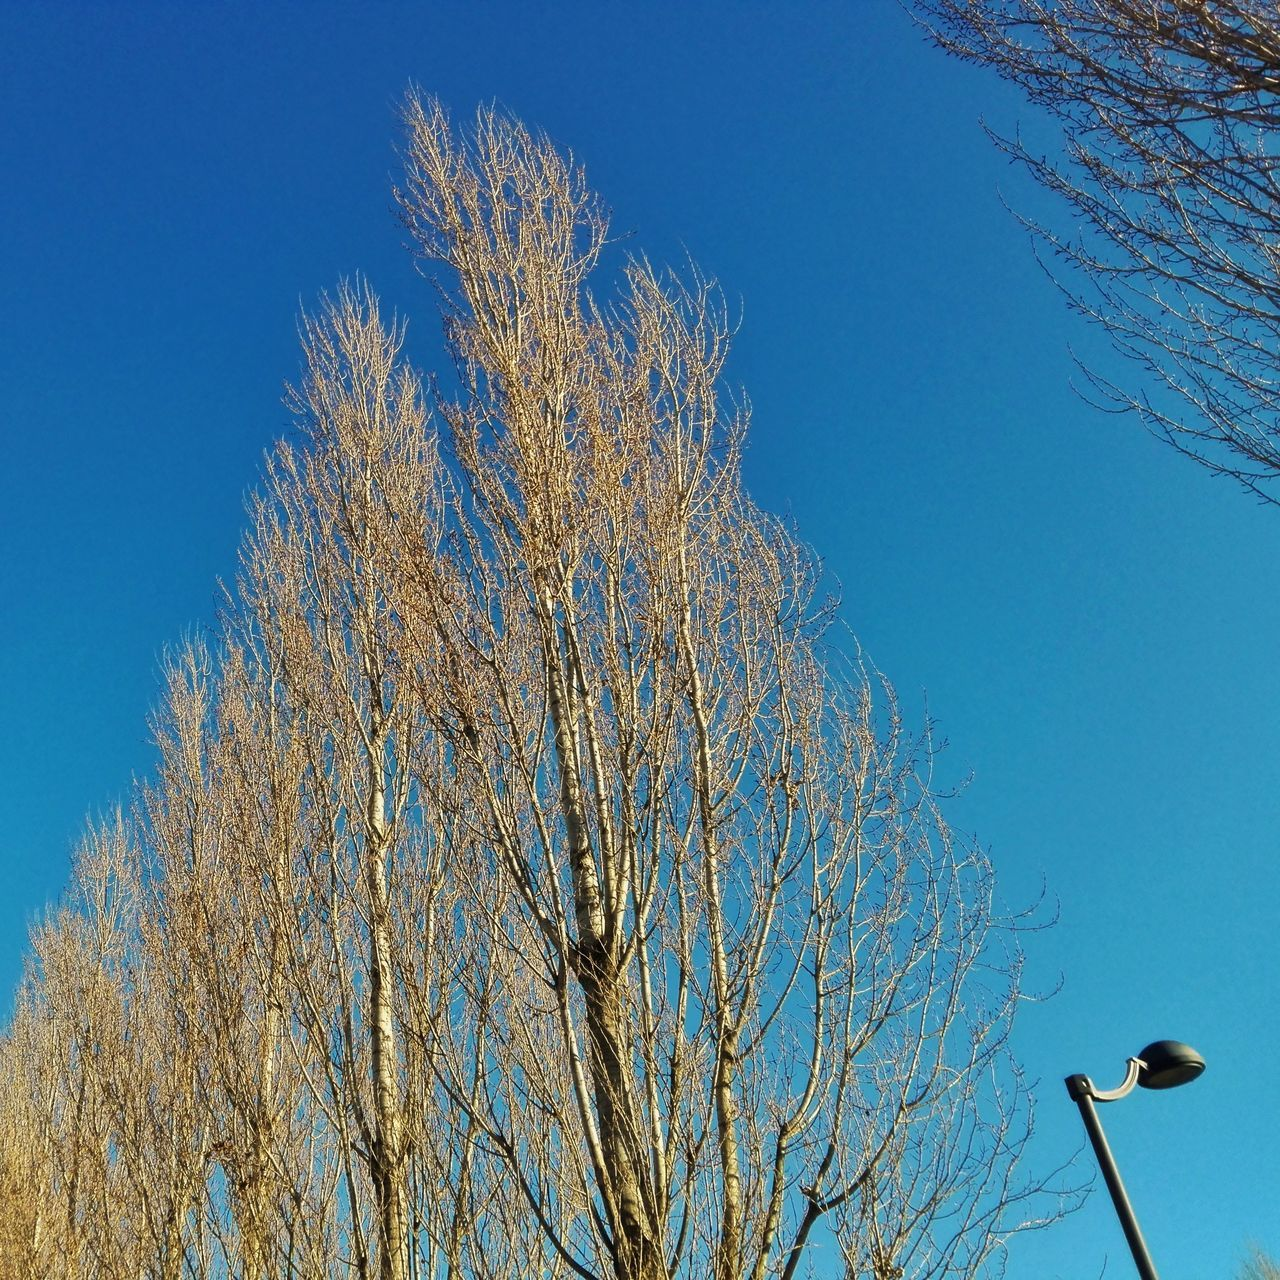 blue, clear sky, low angle view, day, bare tree, nature, no people, tree, branch, beauty in nature, outdoors, sky